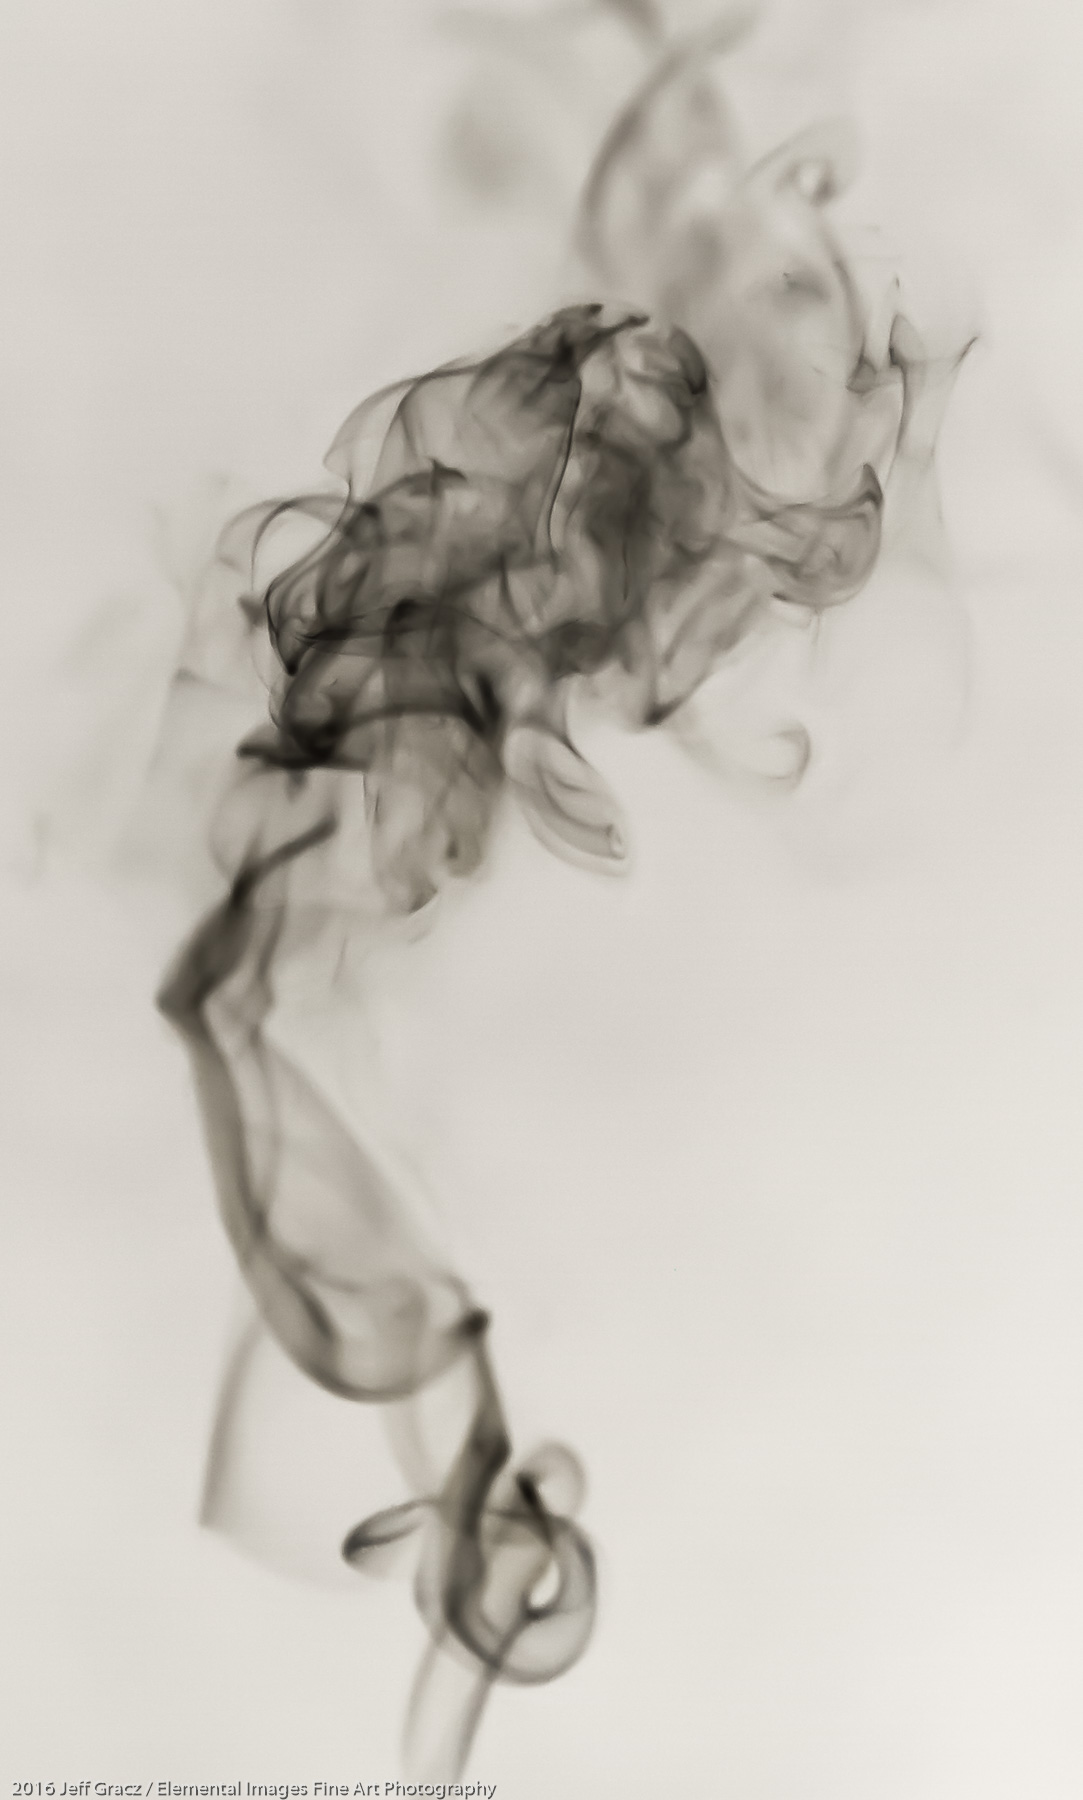 Smoke 18 | Vancouver | WA | USA - © 2016 Jeff Gracz / Elemental Images Fine Art Photography - All Rights Reserved Worldwide